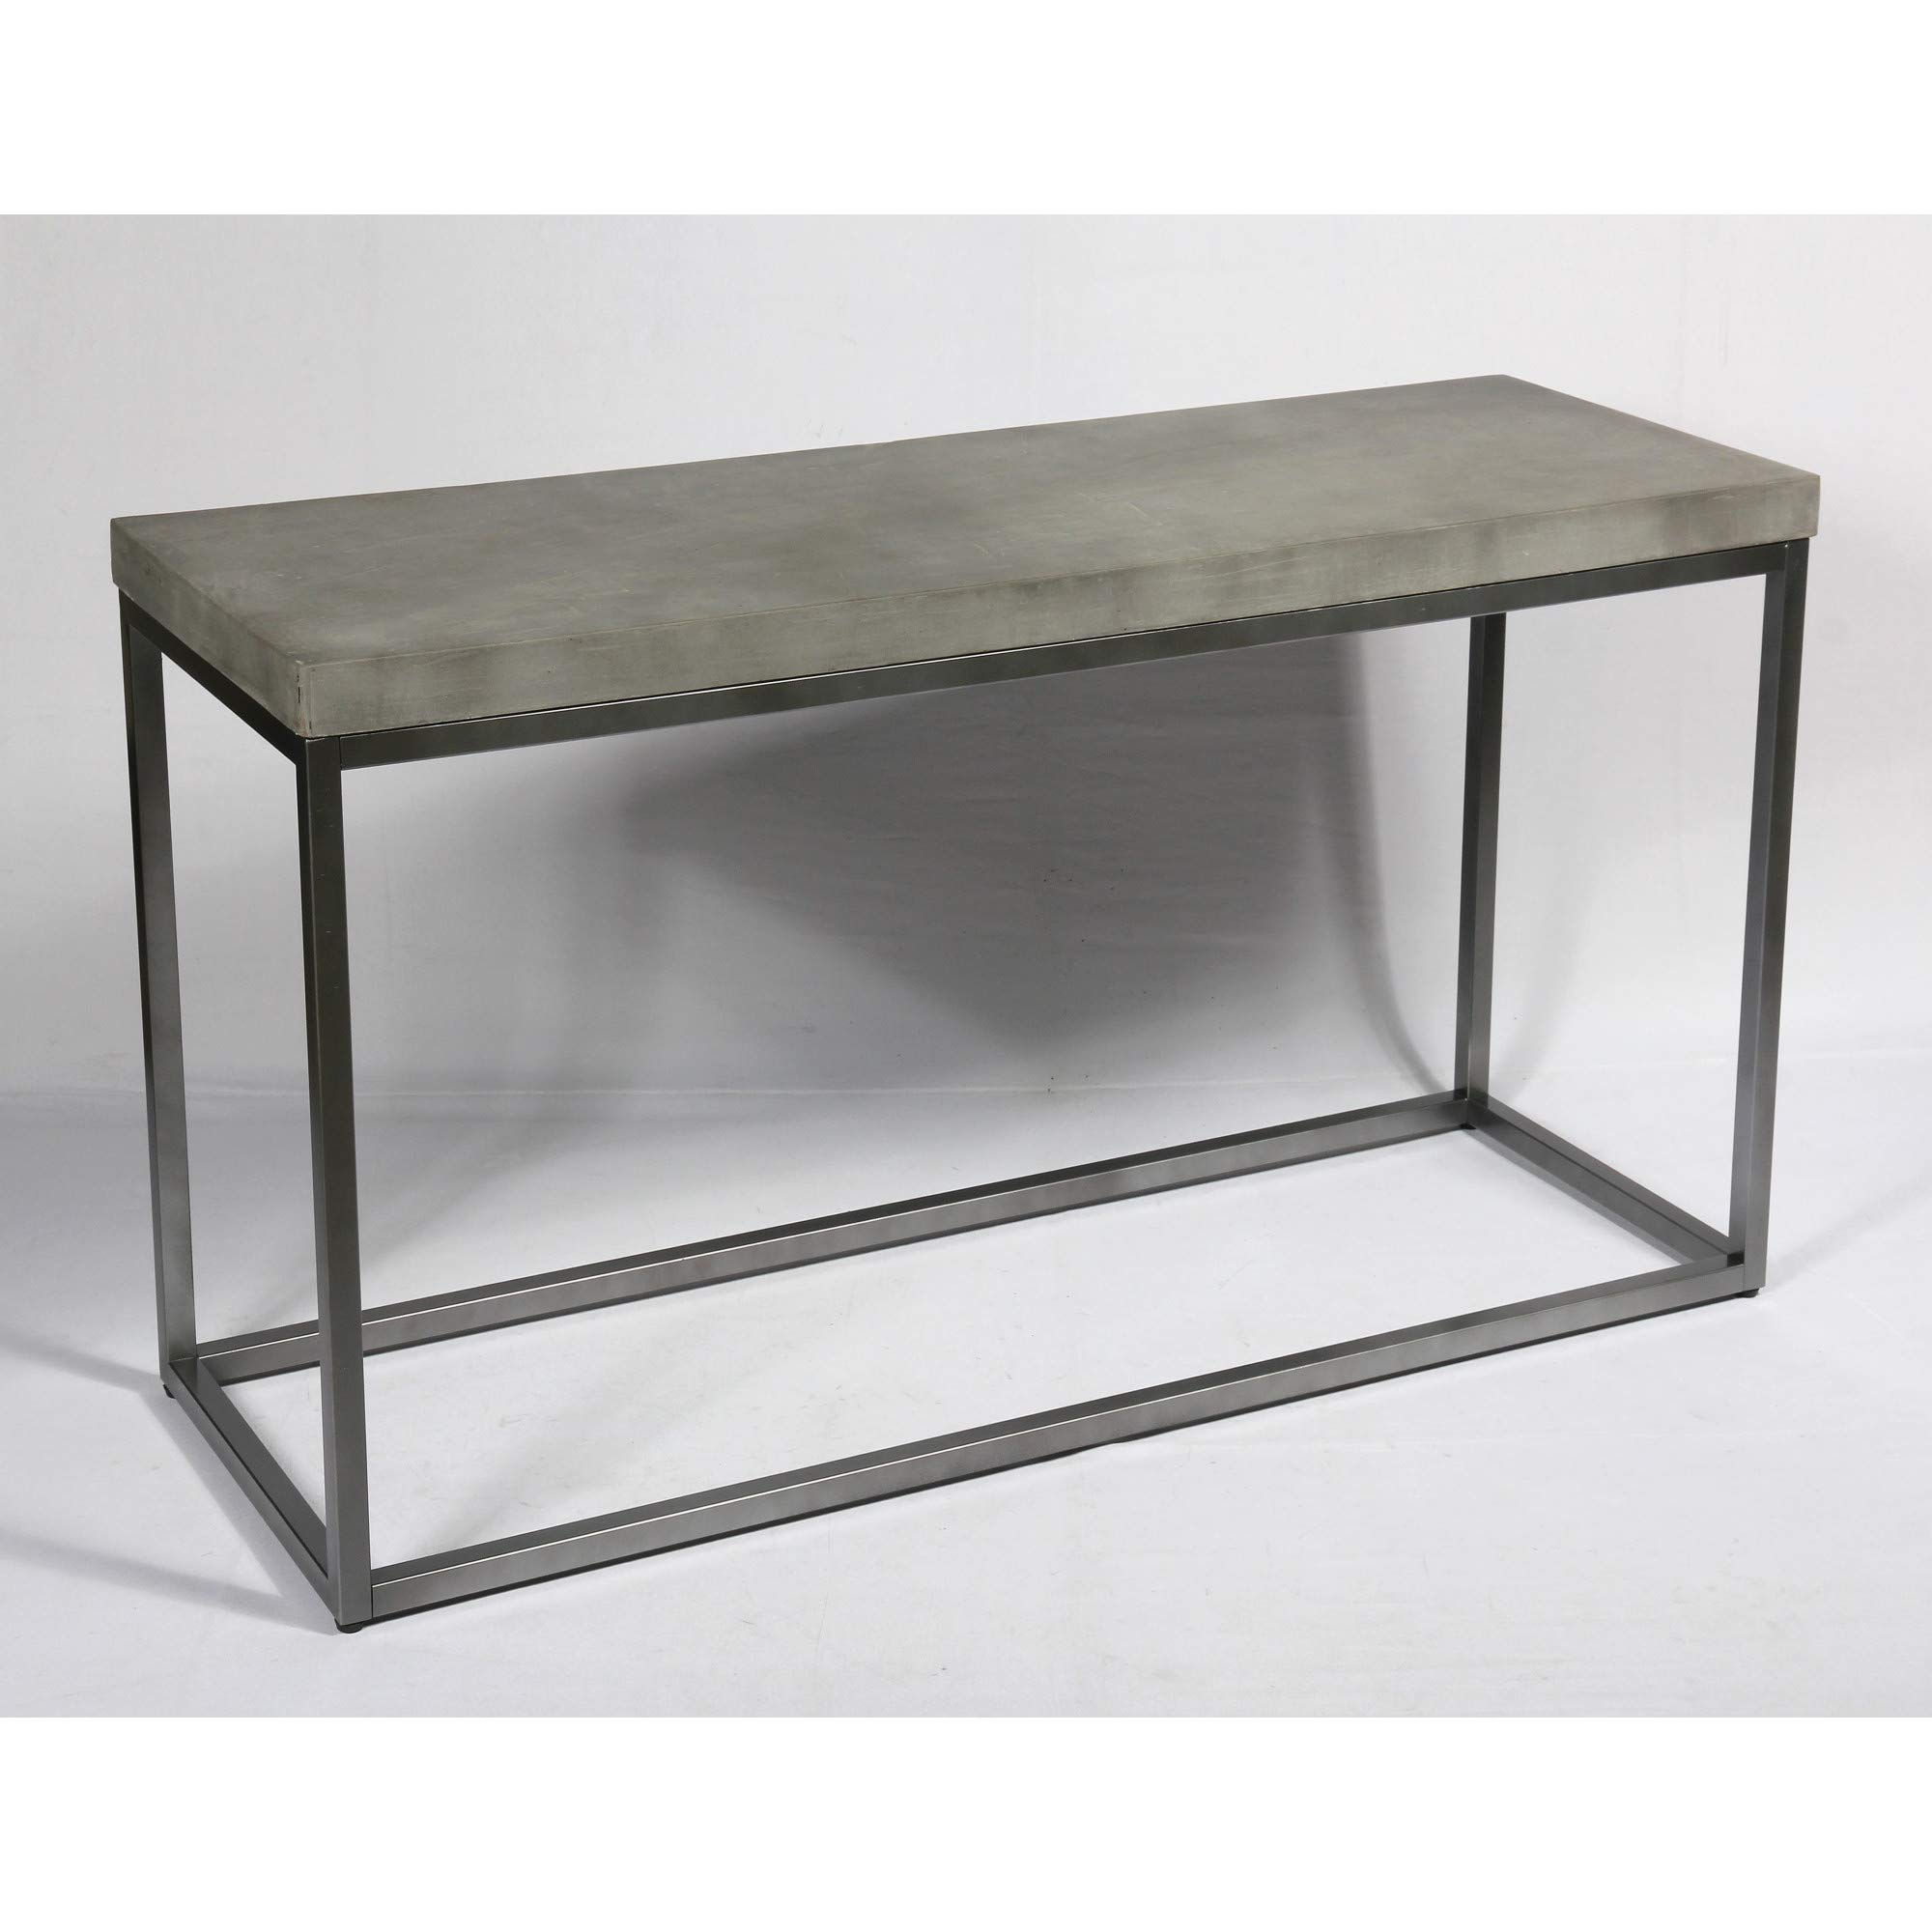 Flint Sofa Table in Slate Gray with Rustic Concrete Look Top And Modern Metal Frame, by Artum Hill by Artum Hill